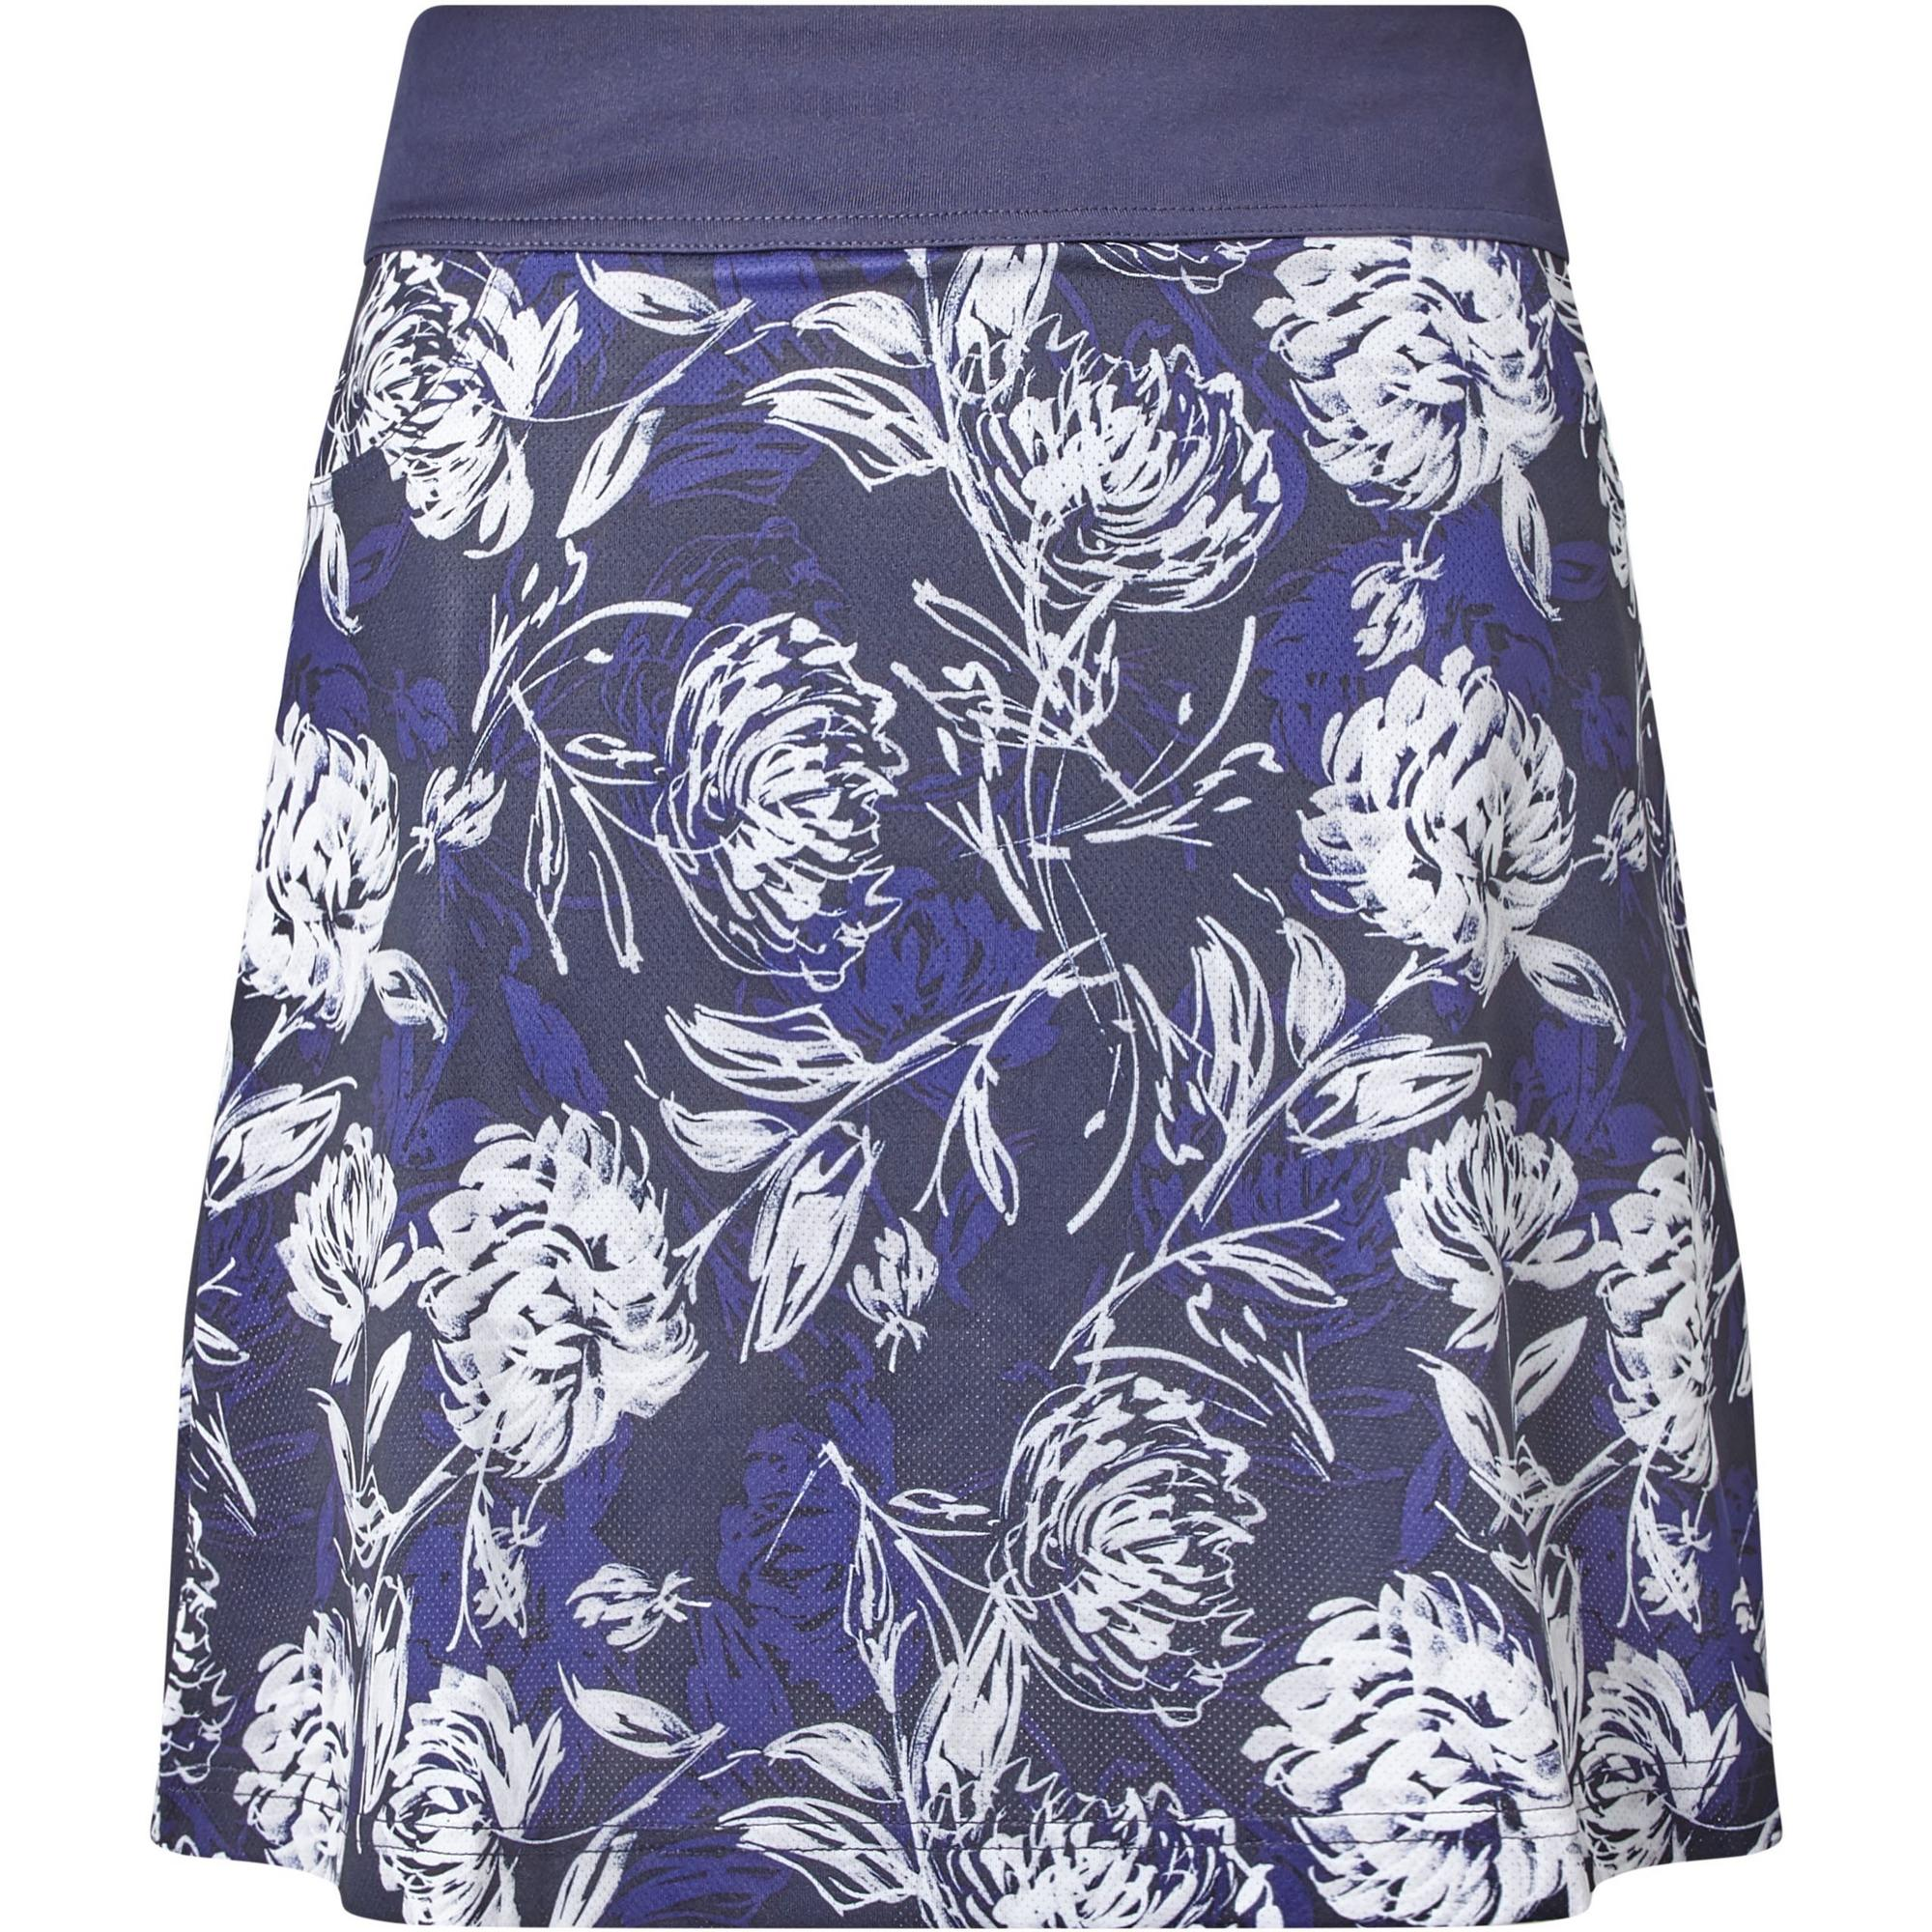 Women's Tropical Print 18 Inch Mesh Knit Skort